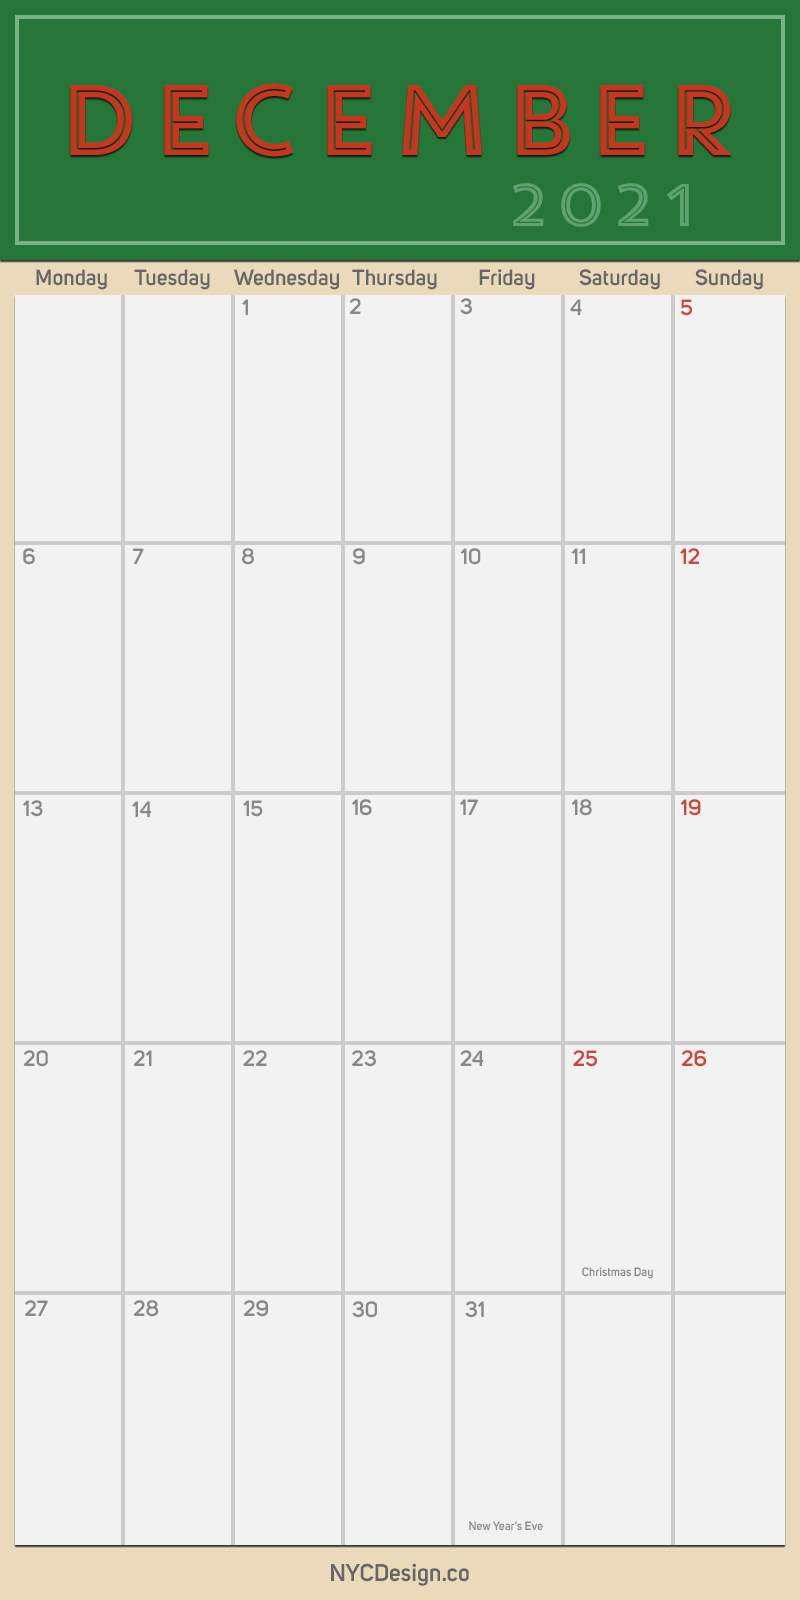 2021 December - Monthly Calendar With Holidays, Printable